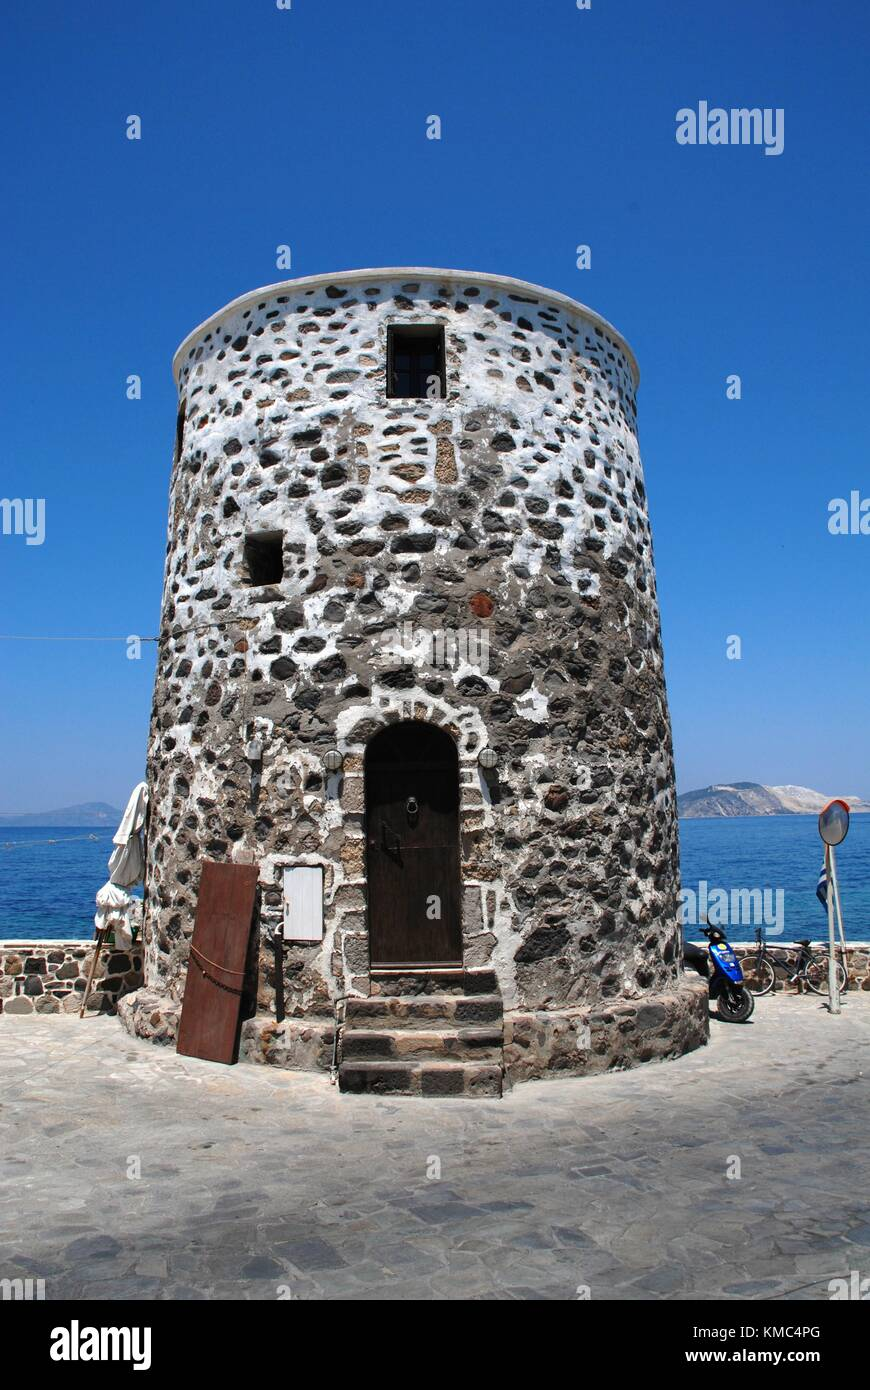 An old stone tower on the seafront at Mandraki on the Greek island of Nisyros on June 12, 2010. - Stock Image